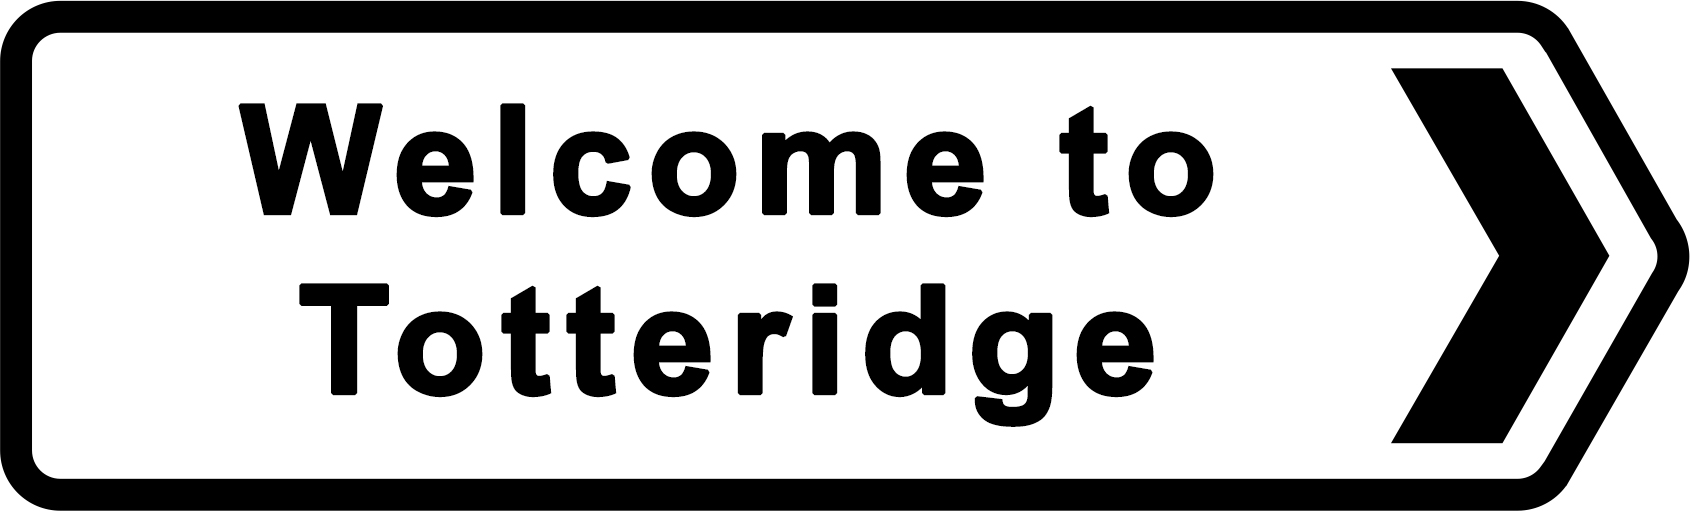 Totteridge and Whetstone tube station - Cheap Driving Schools Lessons in Totteridge and Whetstone, N20, London Borough of Barnet, Hertfordshire, Greater London